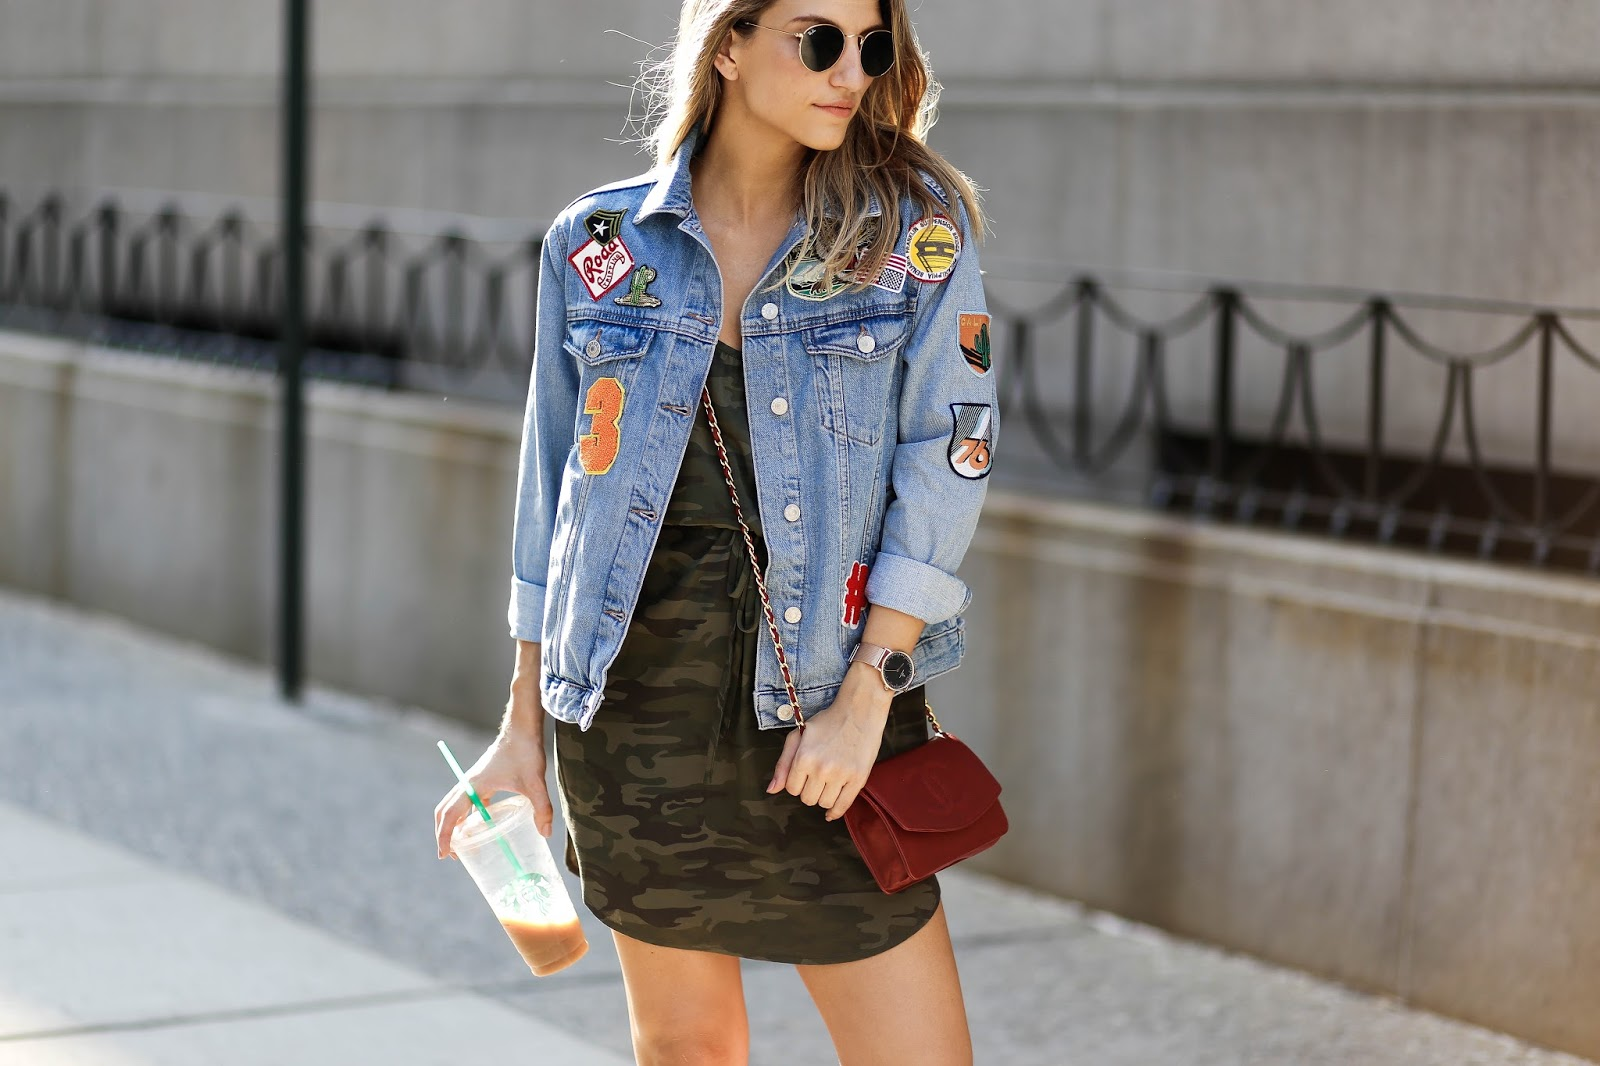 nordstrom topshop denim jacket